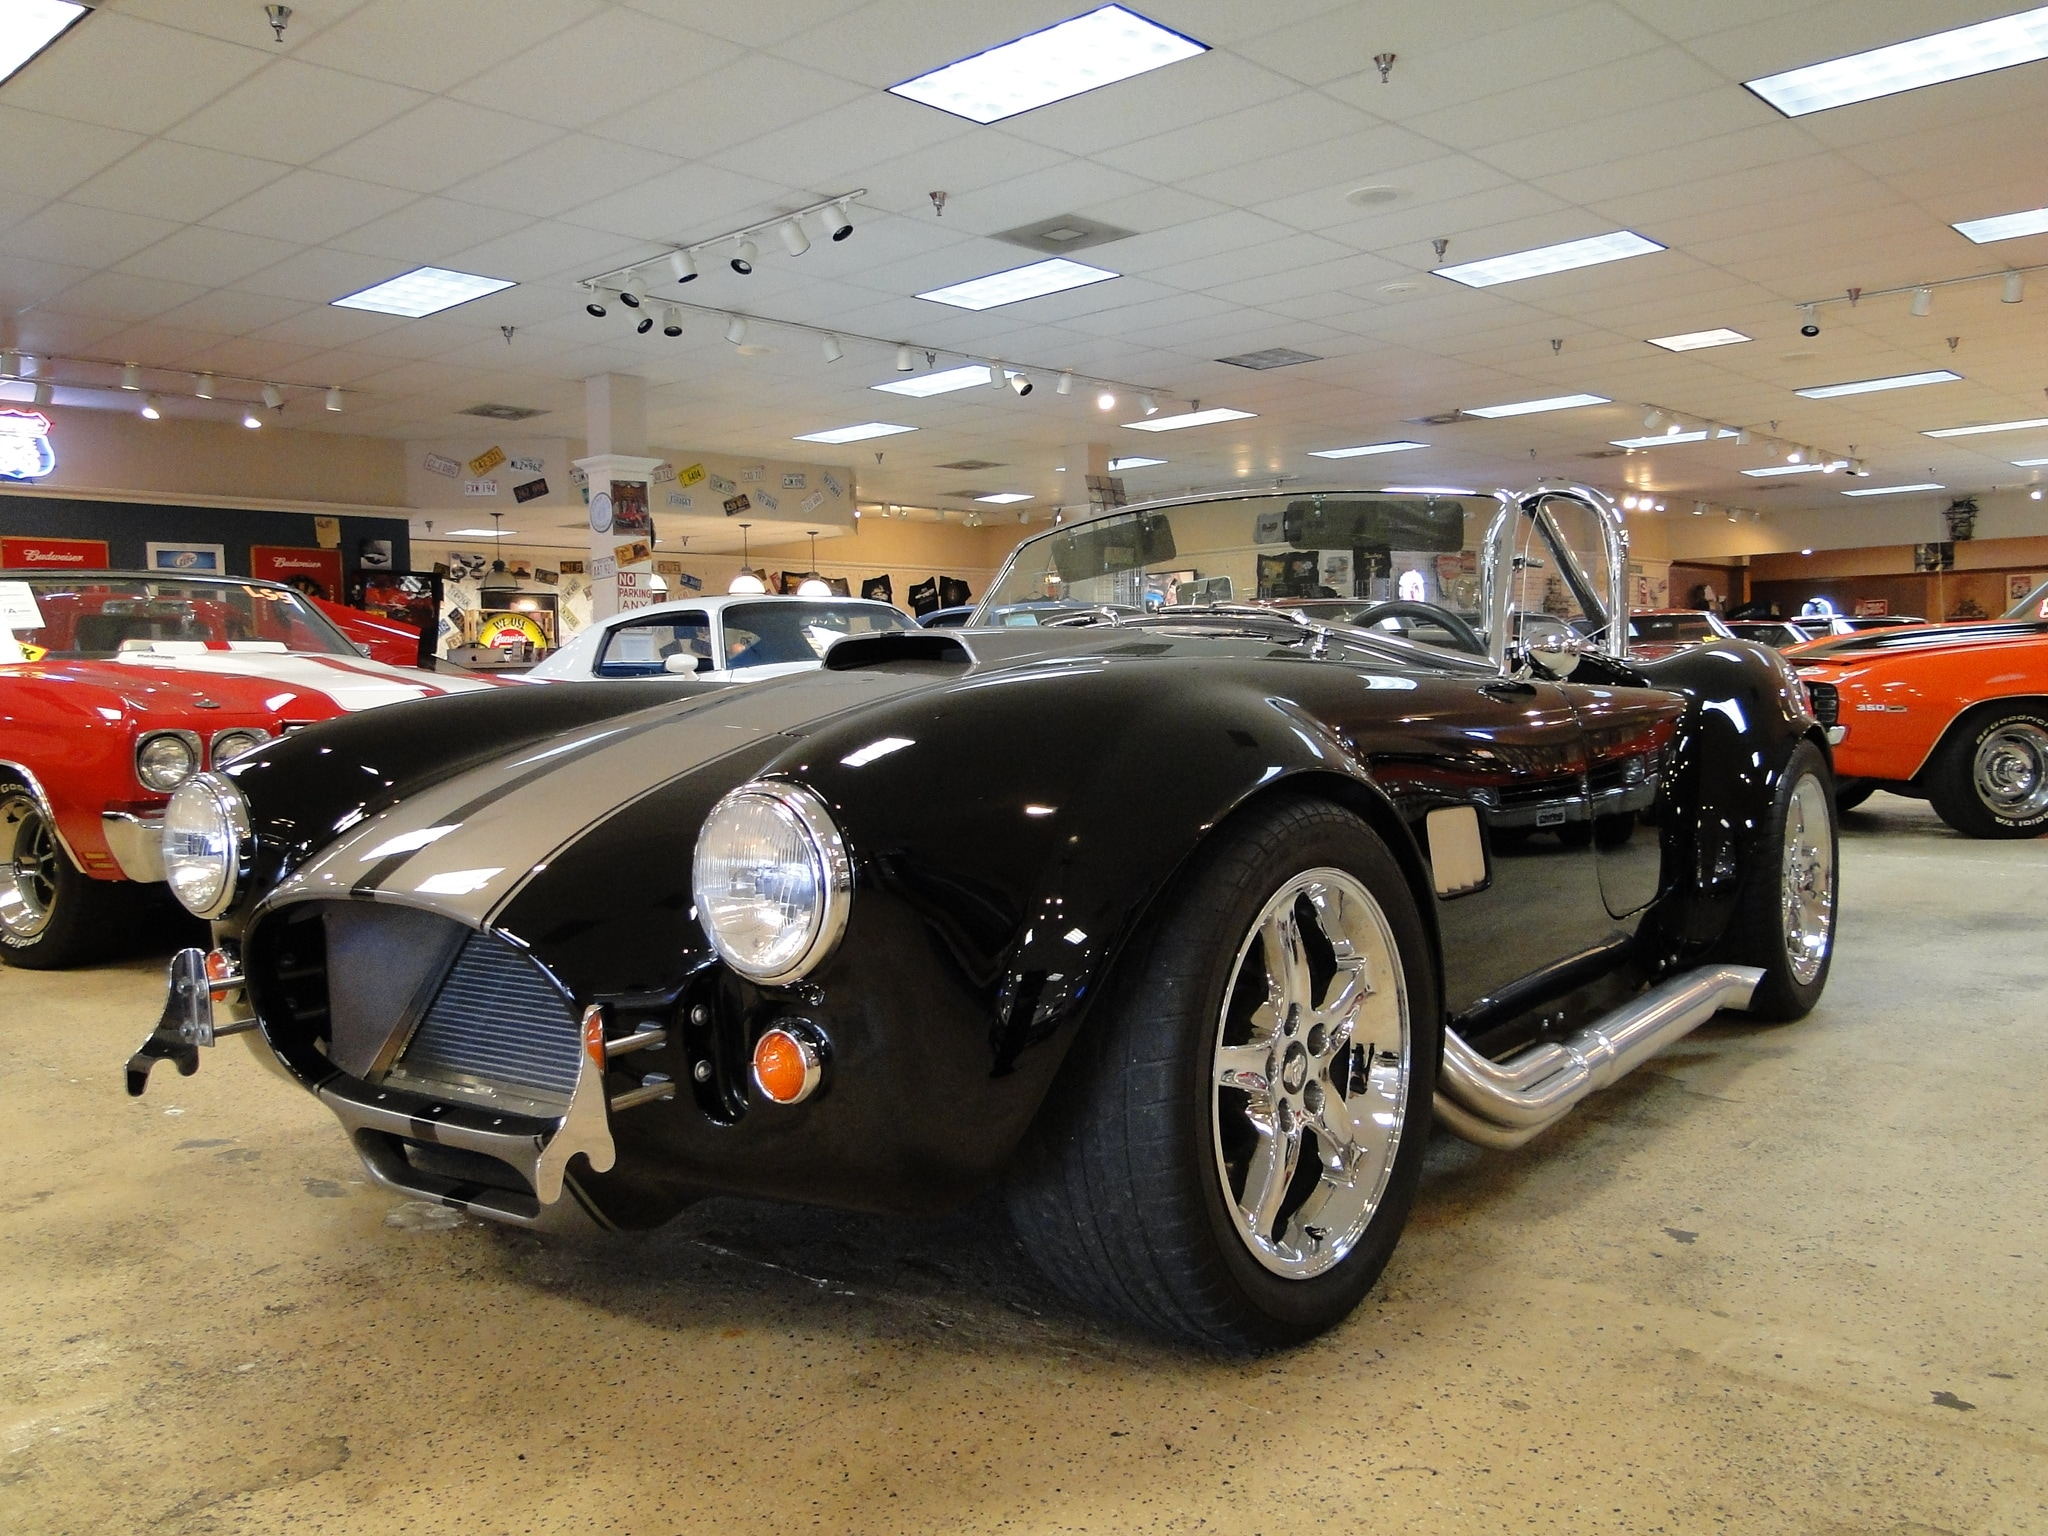 1965 Ford Cobra Factory Five SOLD TO TX! Convertible Glen Burnie MD